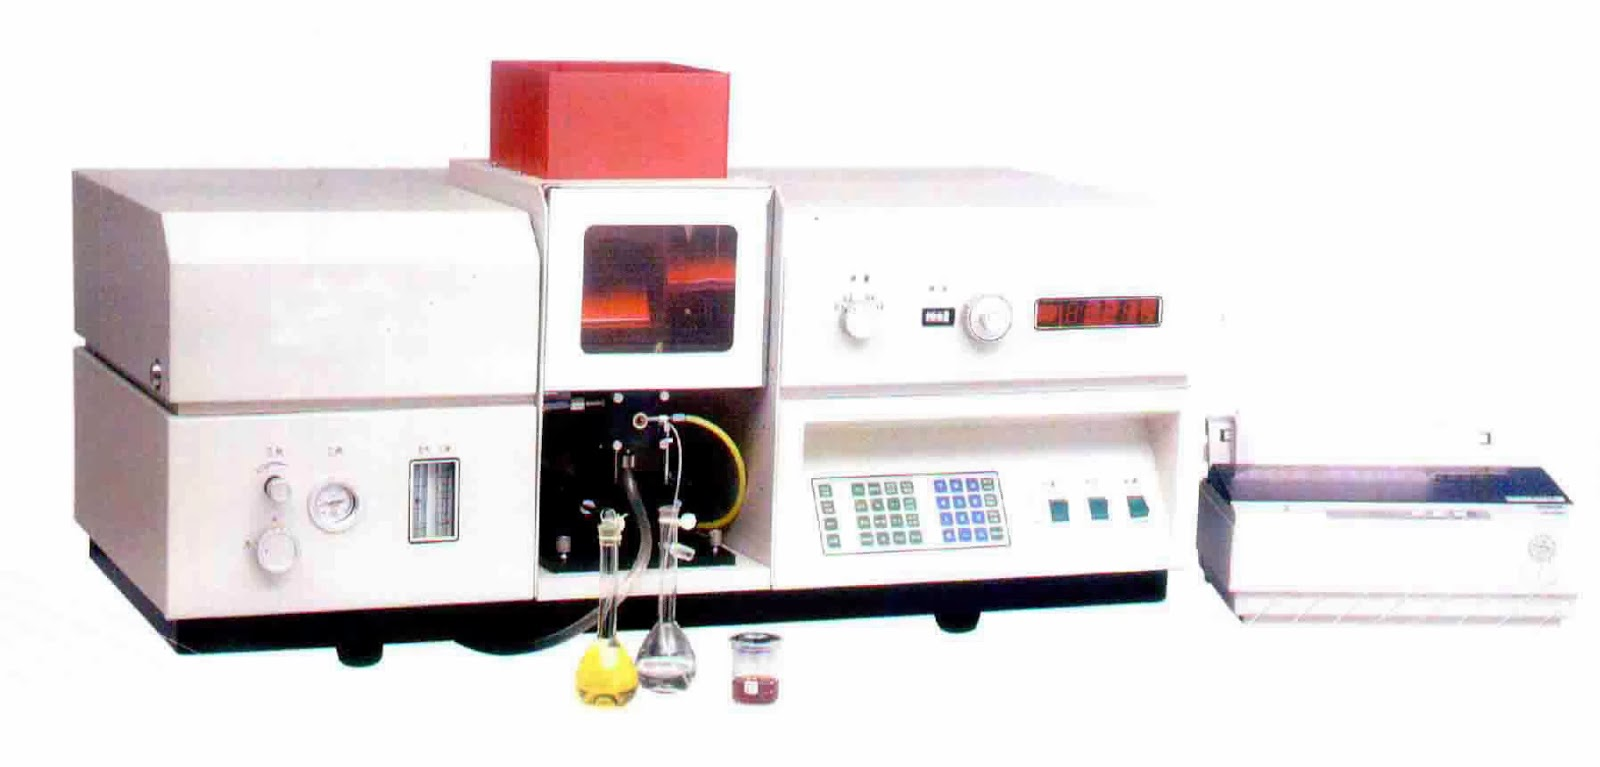 Graphite furnace atomic absorption spectrophotometry